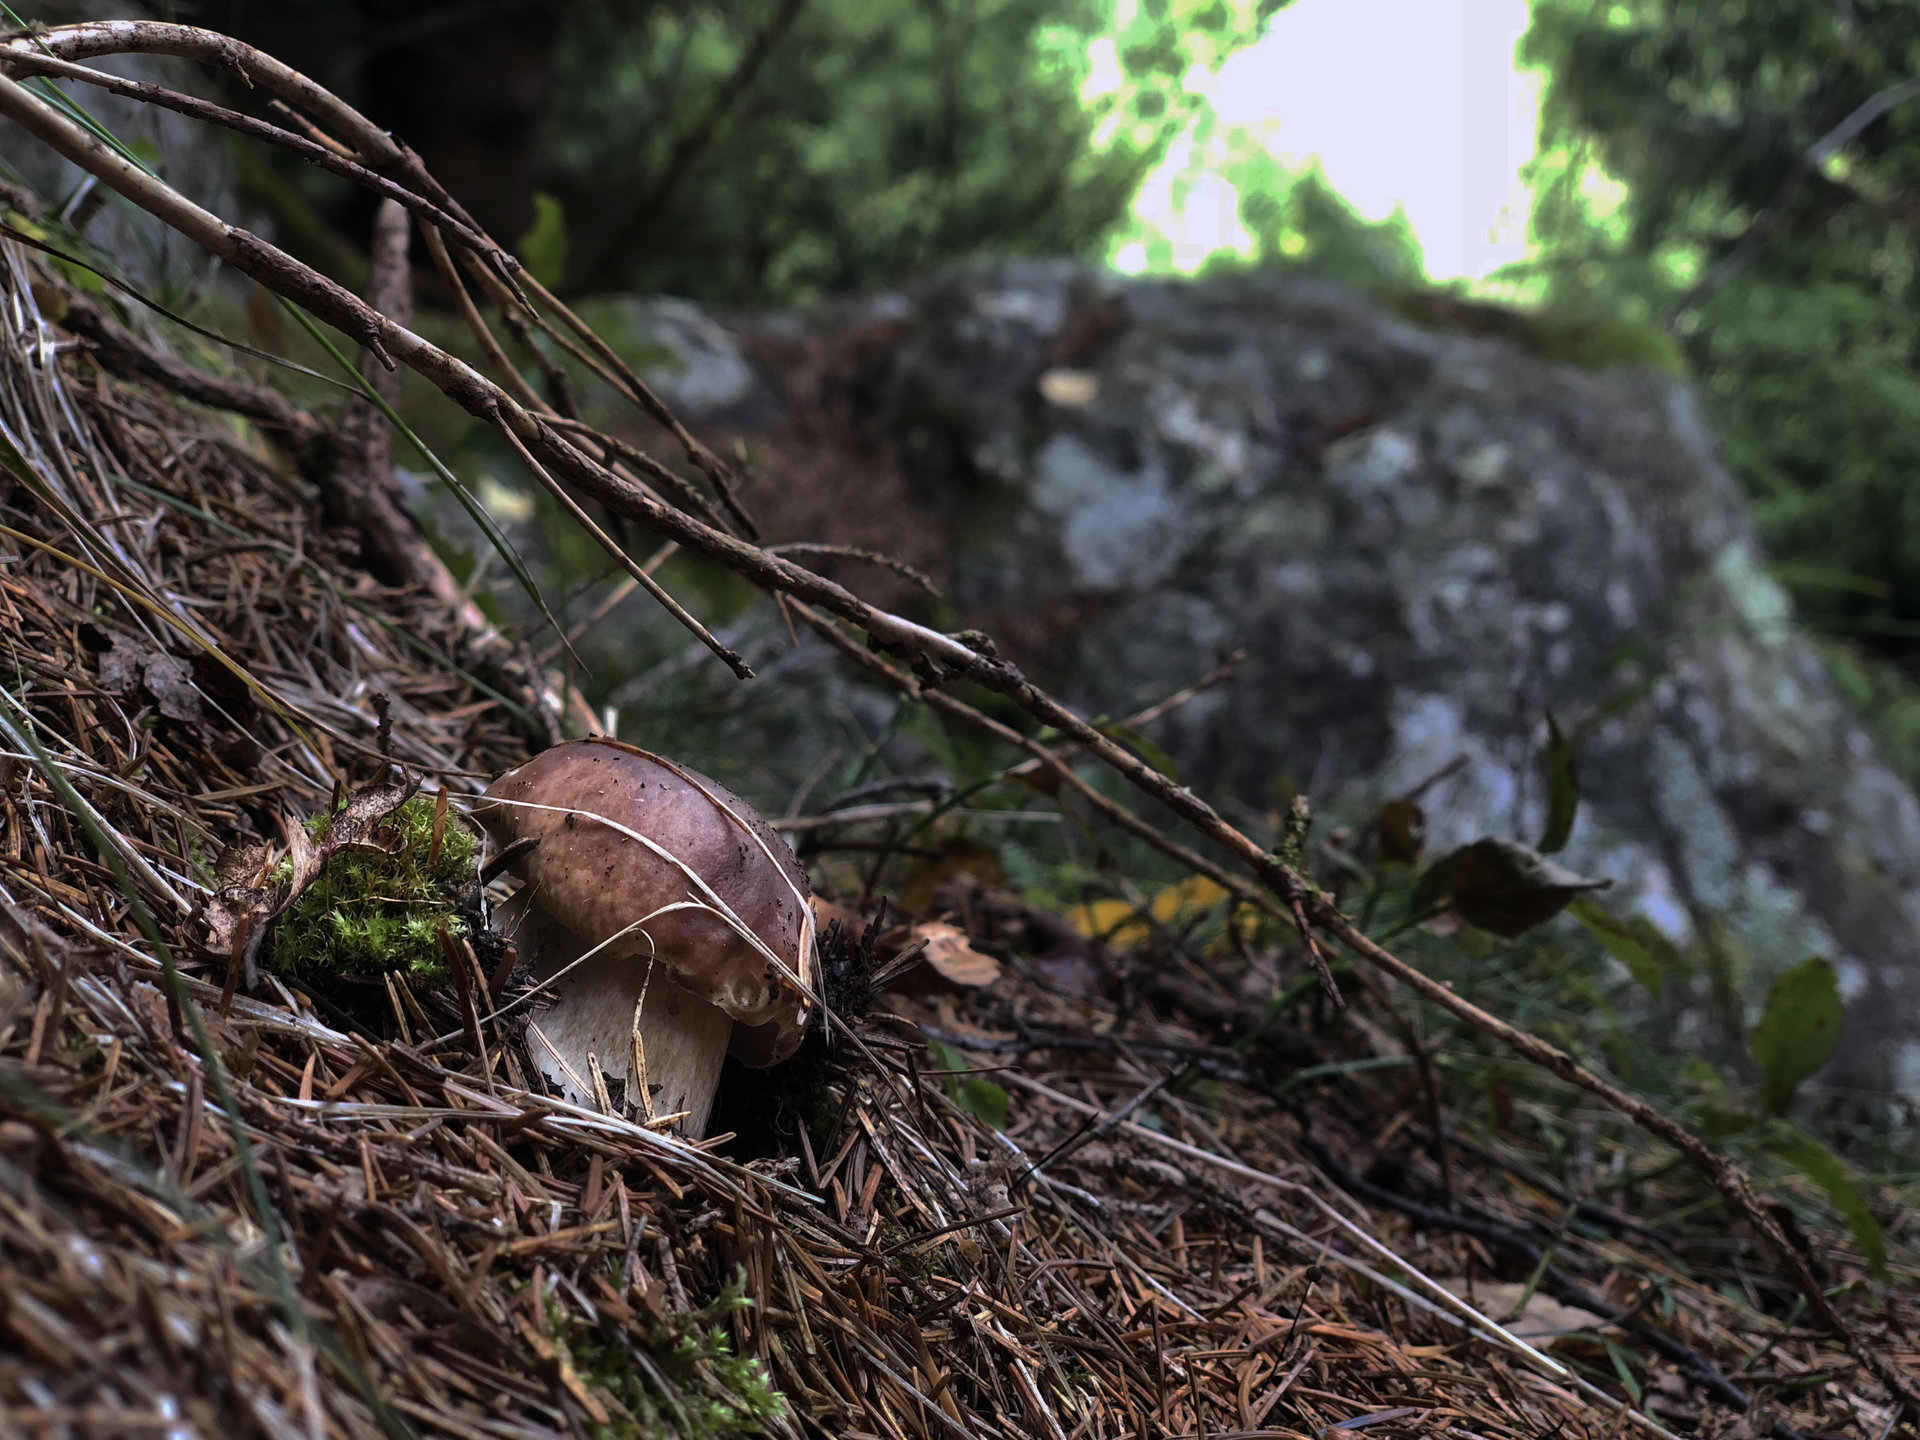 quality mushrooms in the Valtellina woodlands